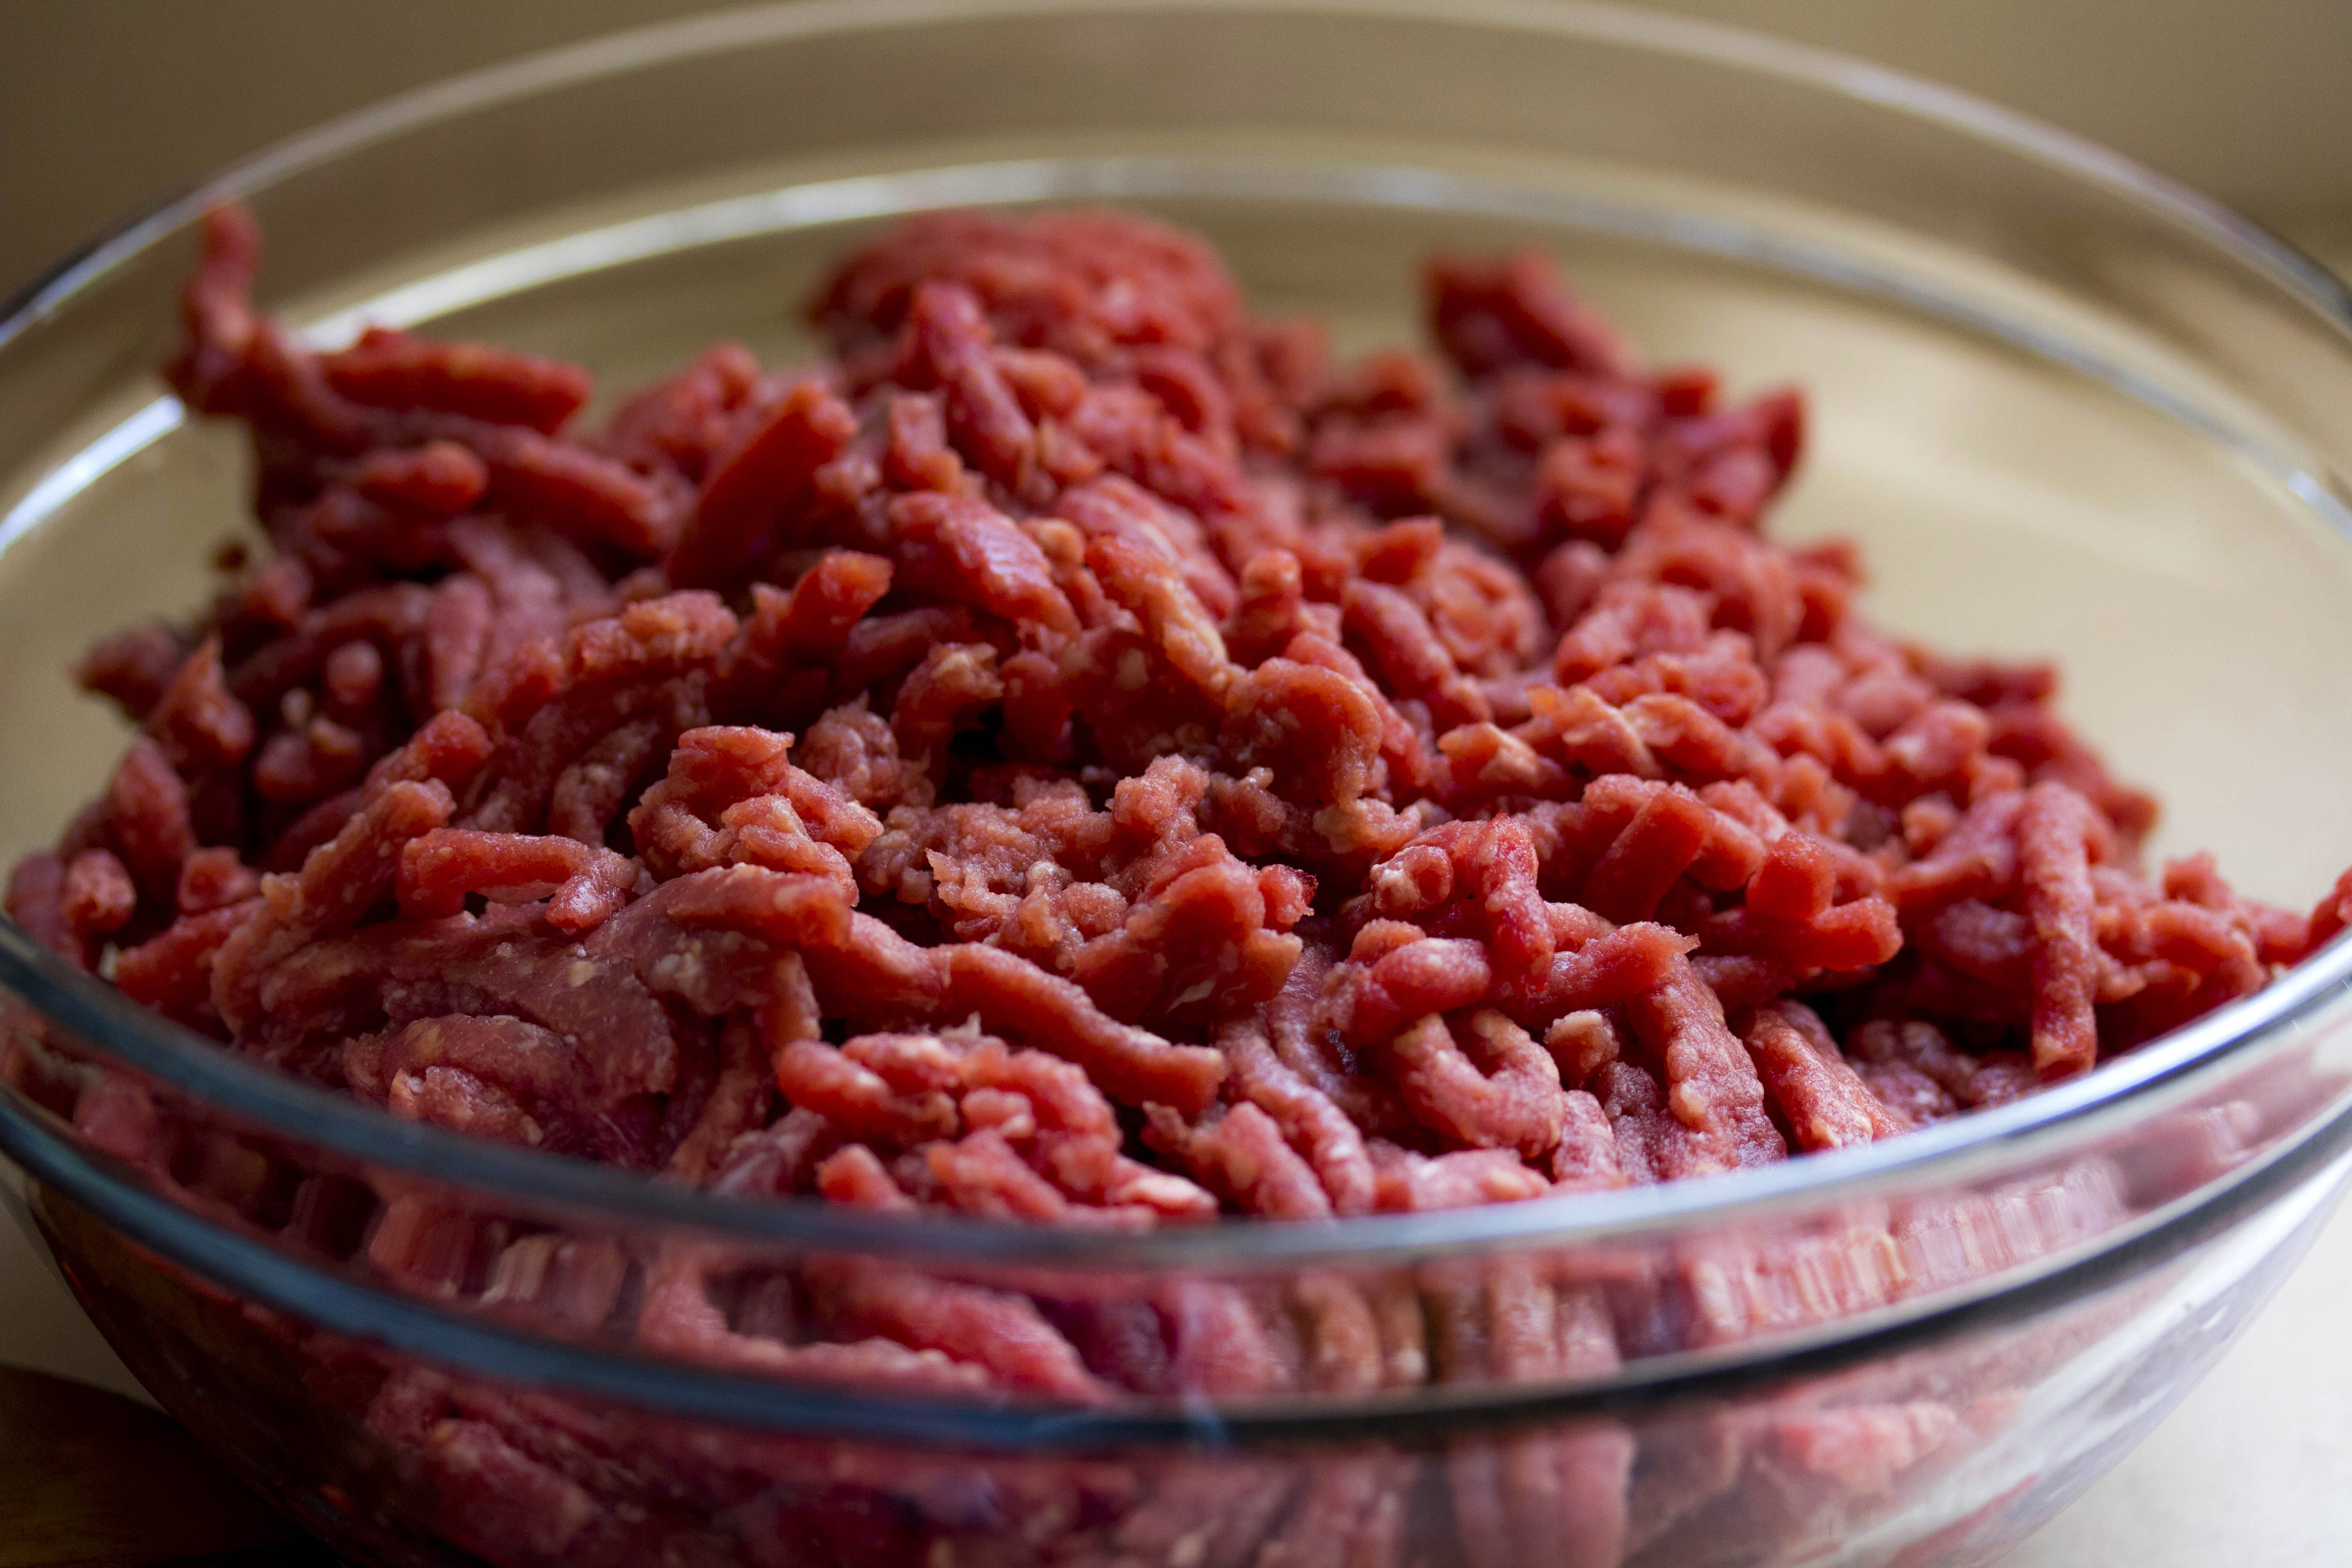 Ground beef sell by date in Perth